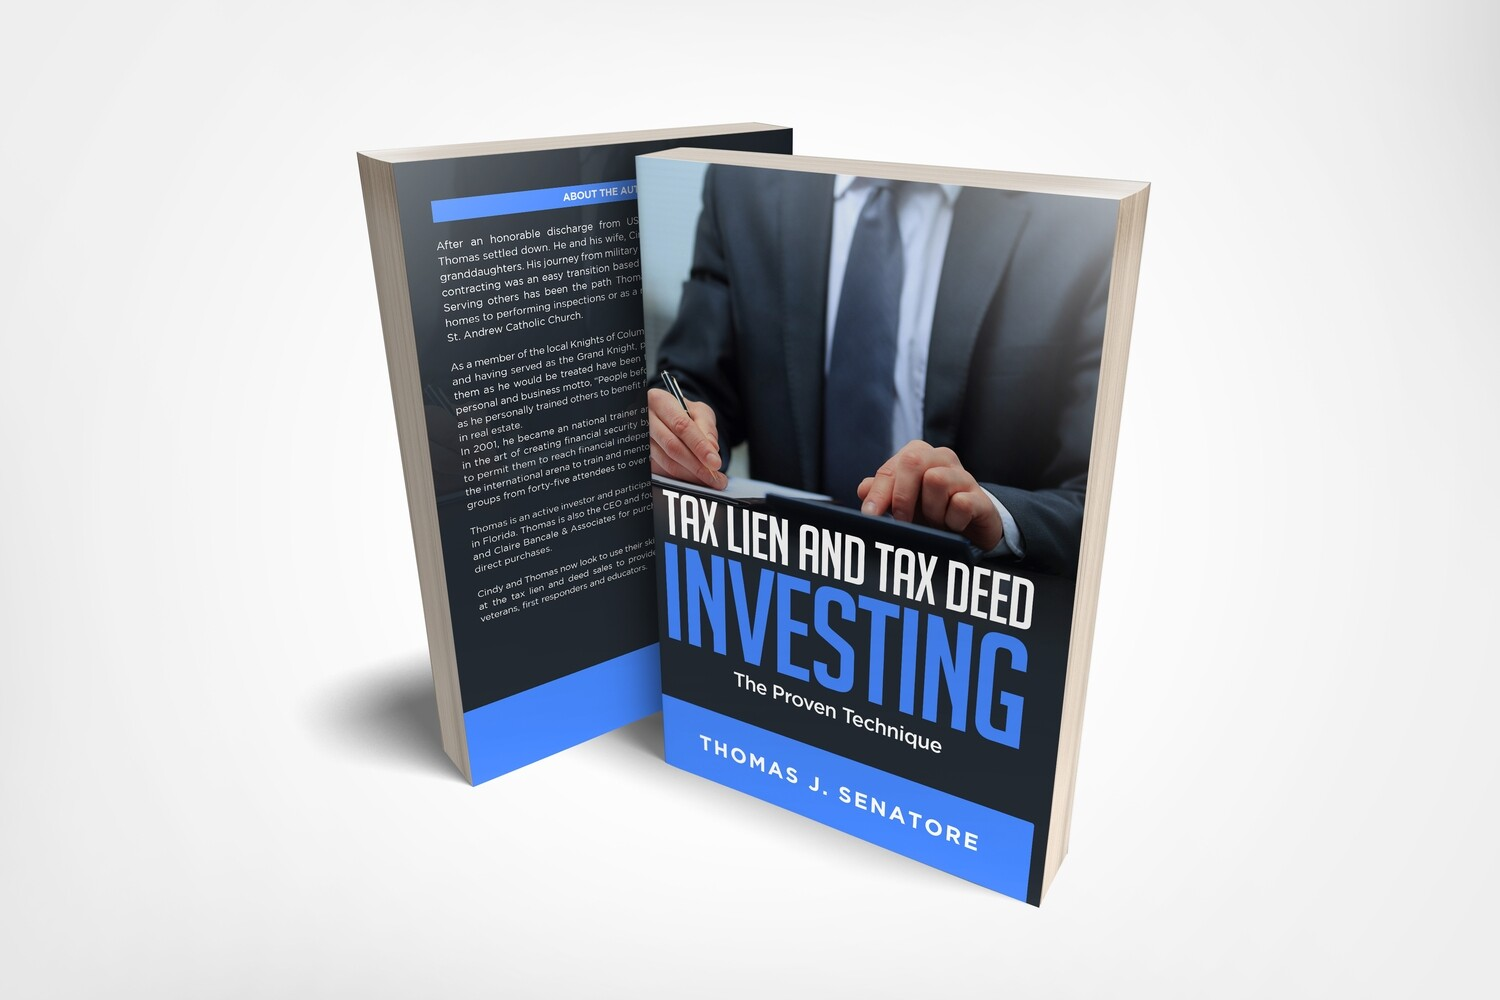 Tax Lien and Tax Deed Investing - The Proven Technique